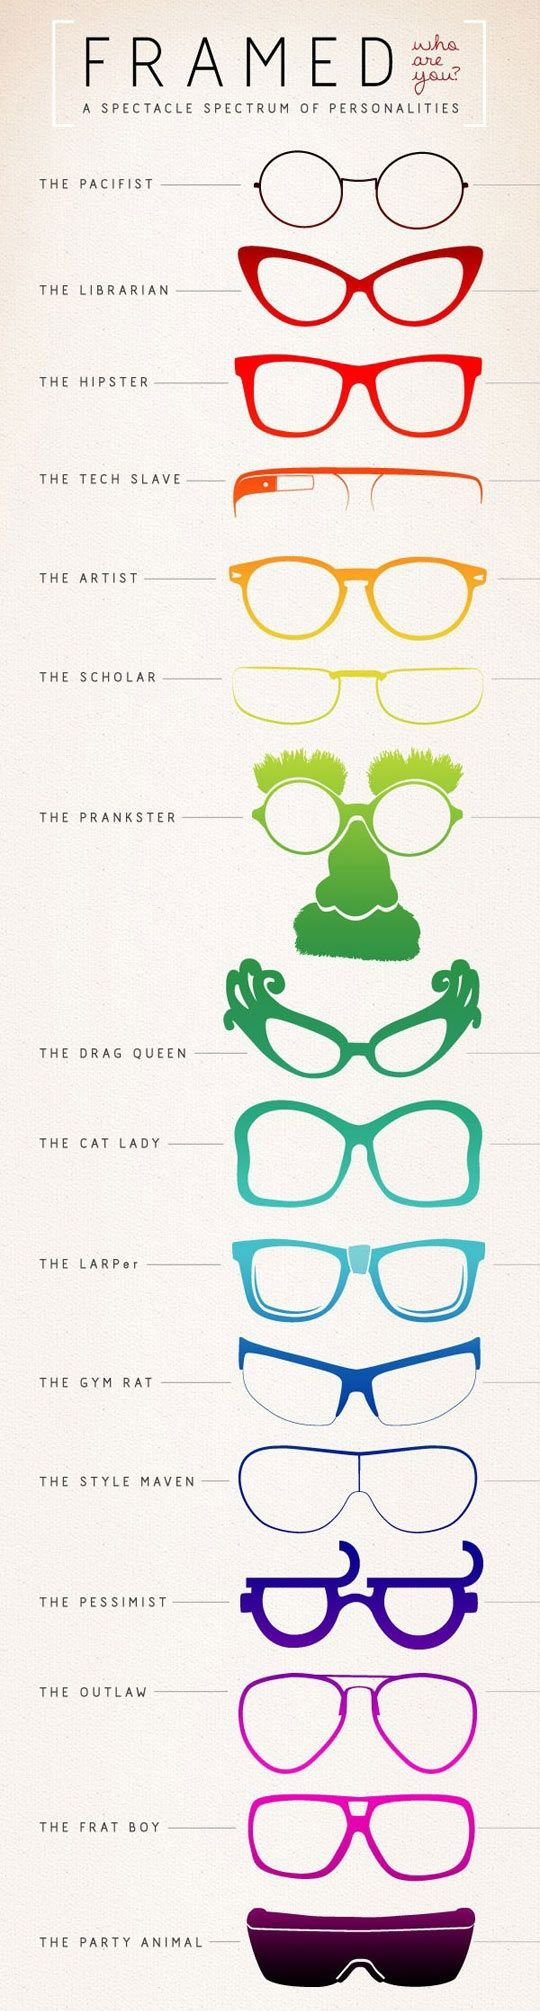 I don't wear glasses but this made me smile. - A Spectacle Spectrum of Personalities.